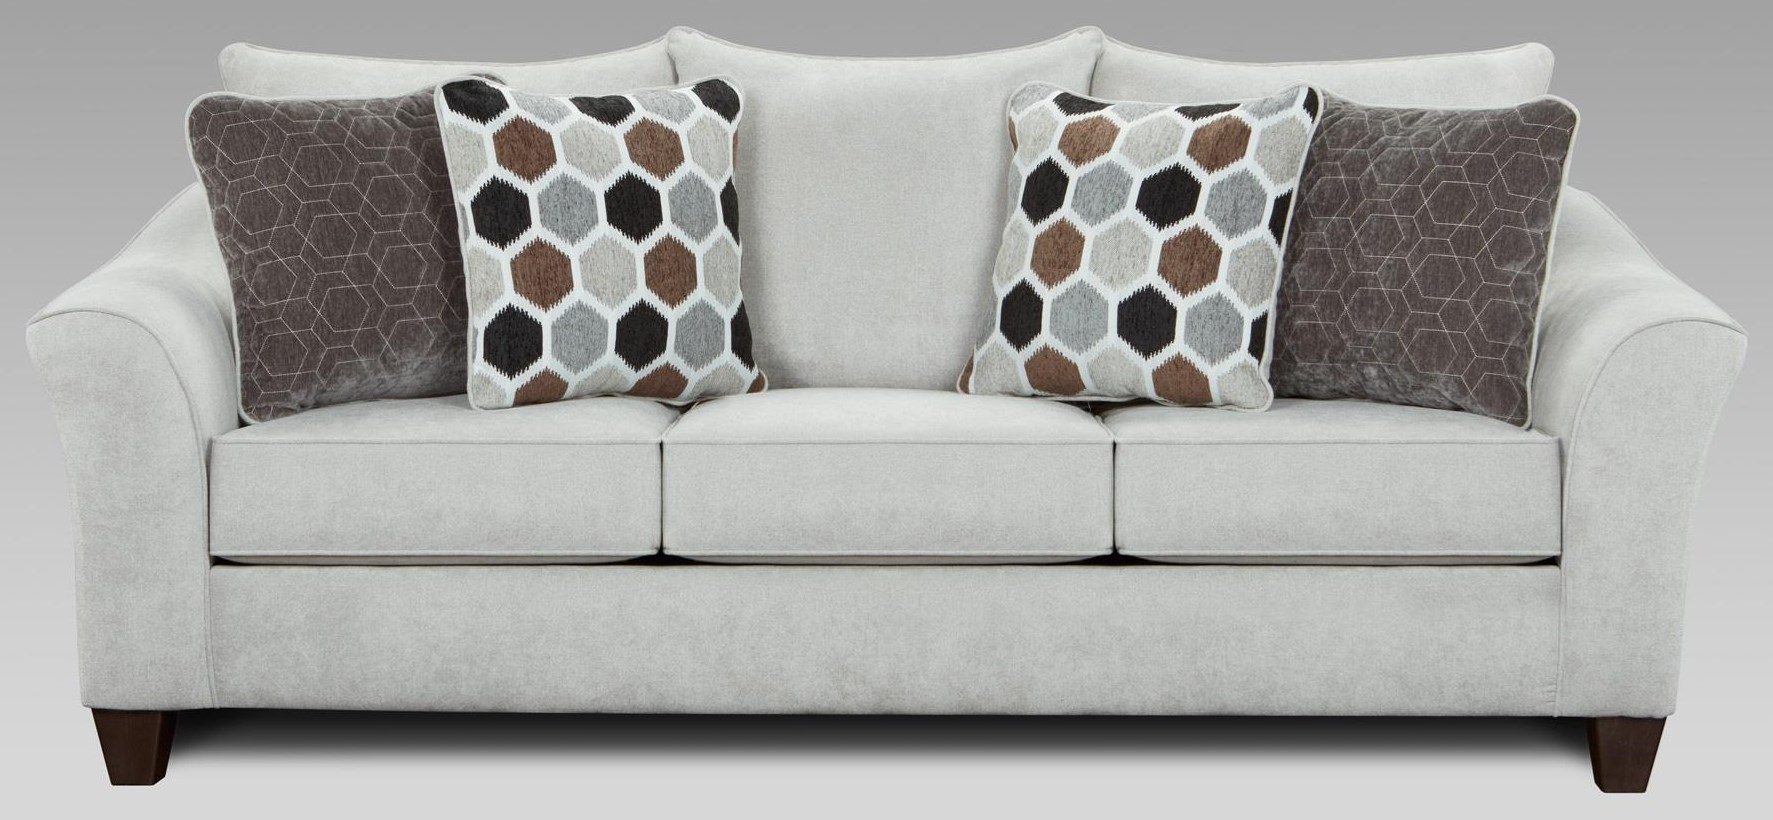 7700 Sofa with Flared Arms by Affordable Furniture at Furniture Fair - North Carolina